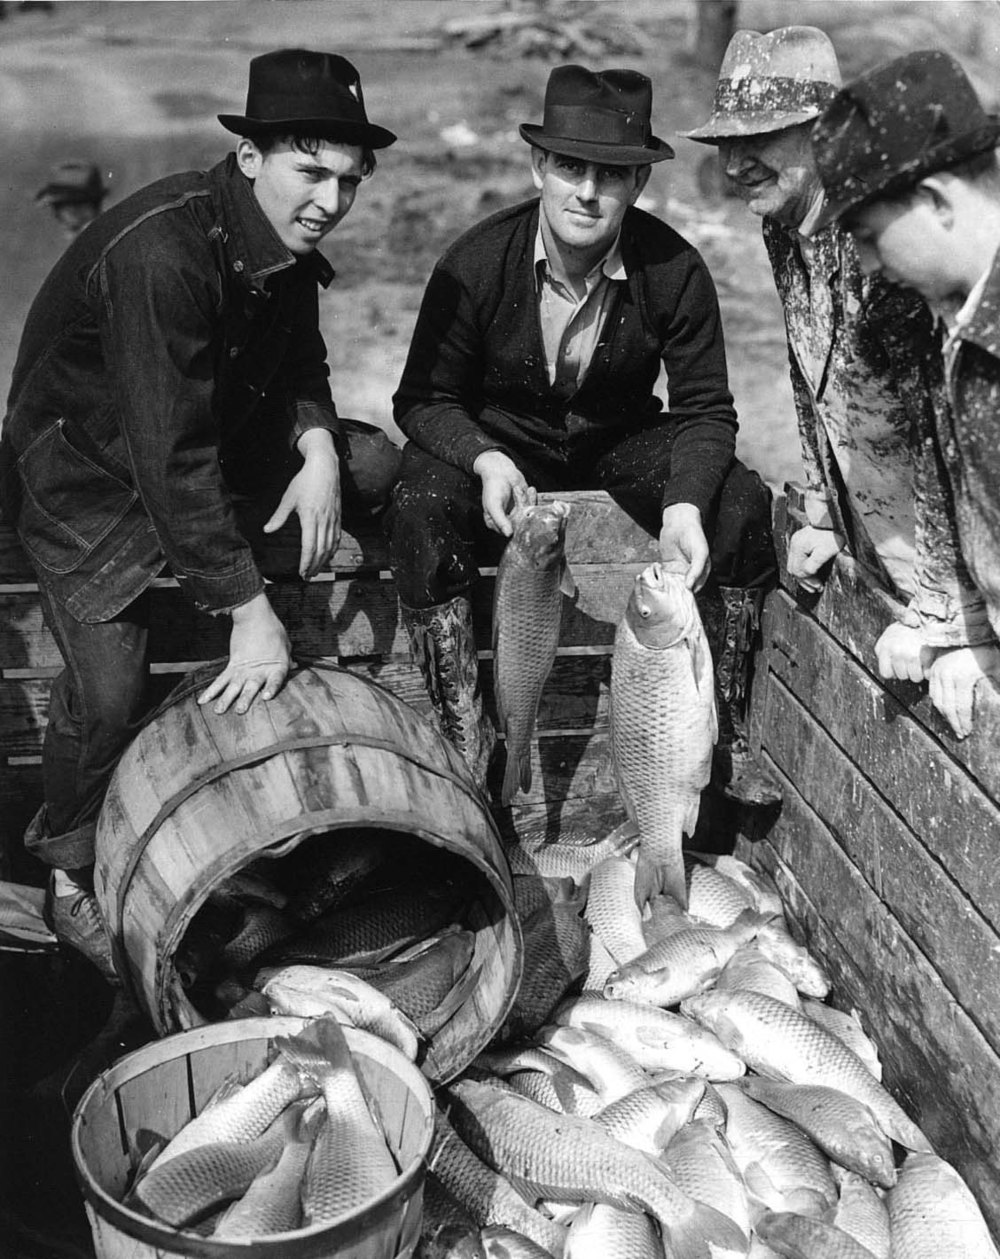 """J.W. Bush (second from left) and carp caught in land-locked flood waters of the Cumberland River in North Nashville, TN. 3/14/1939"""